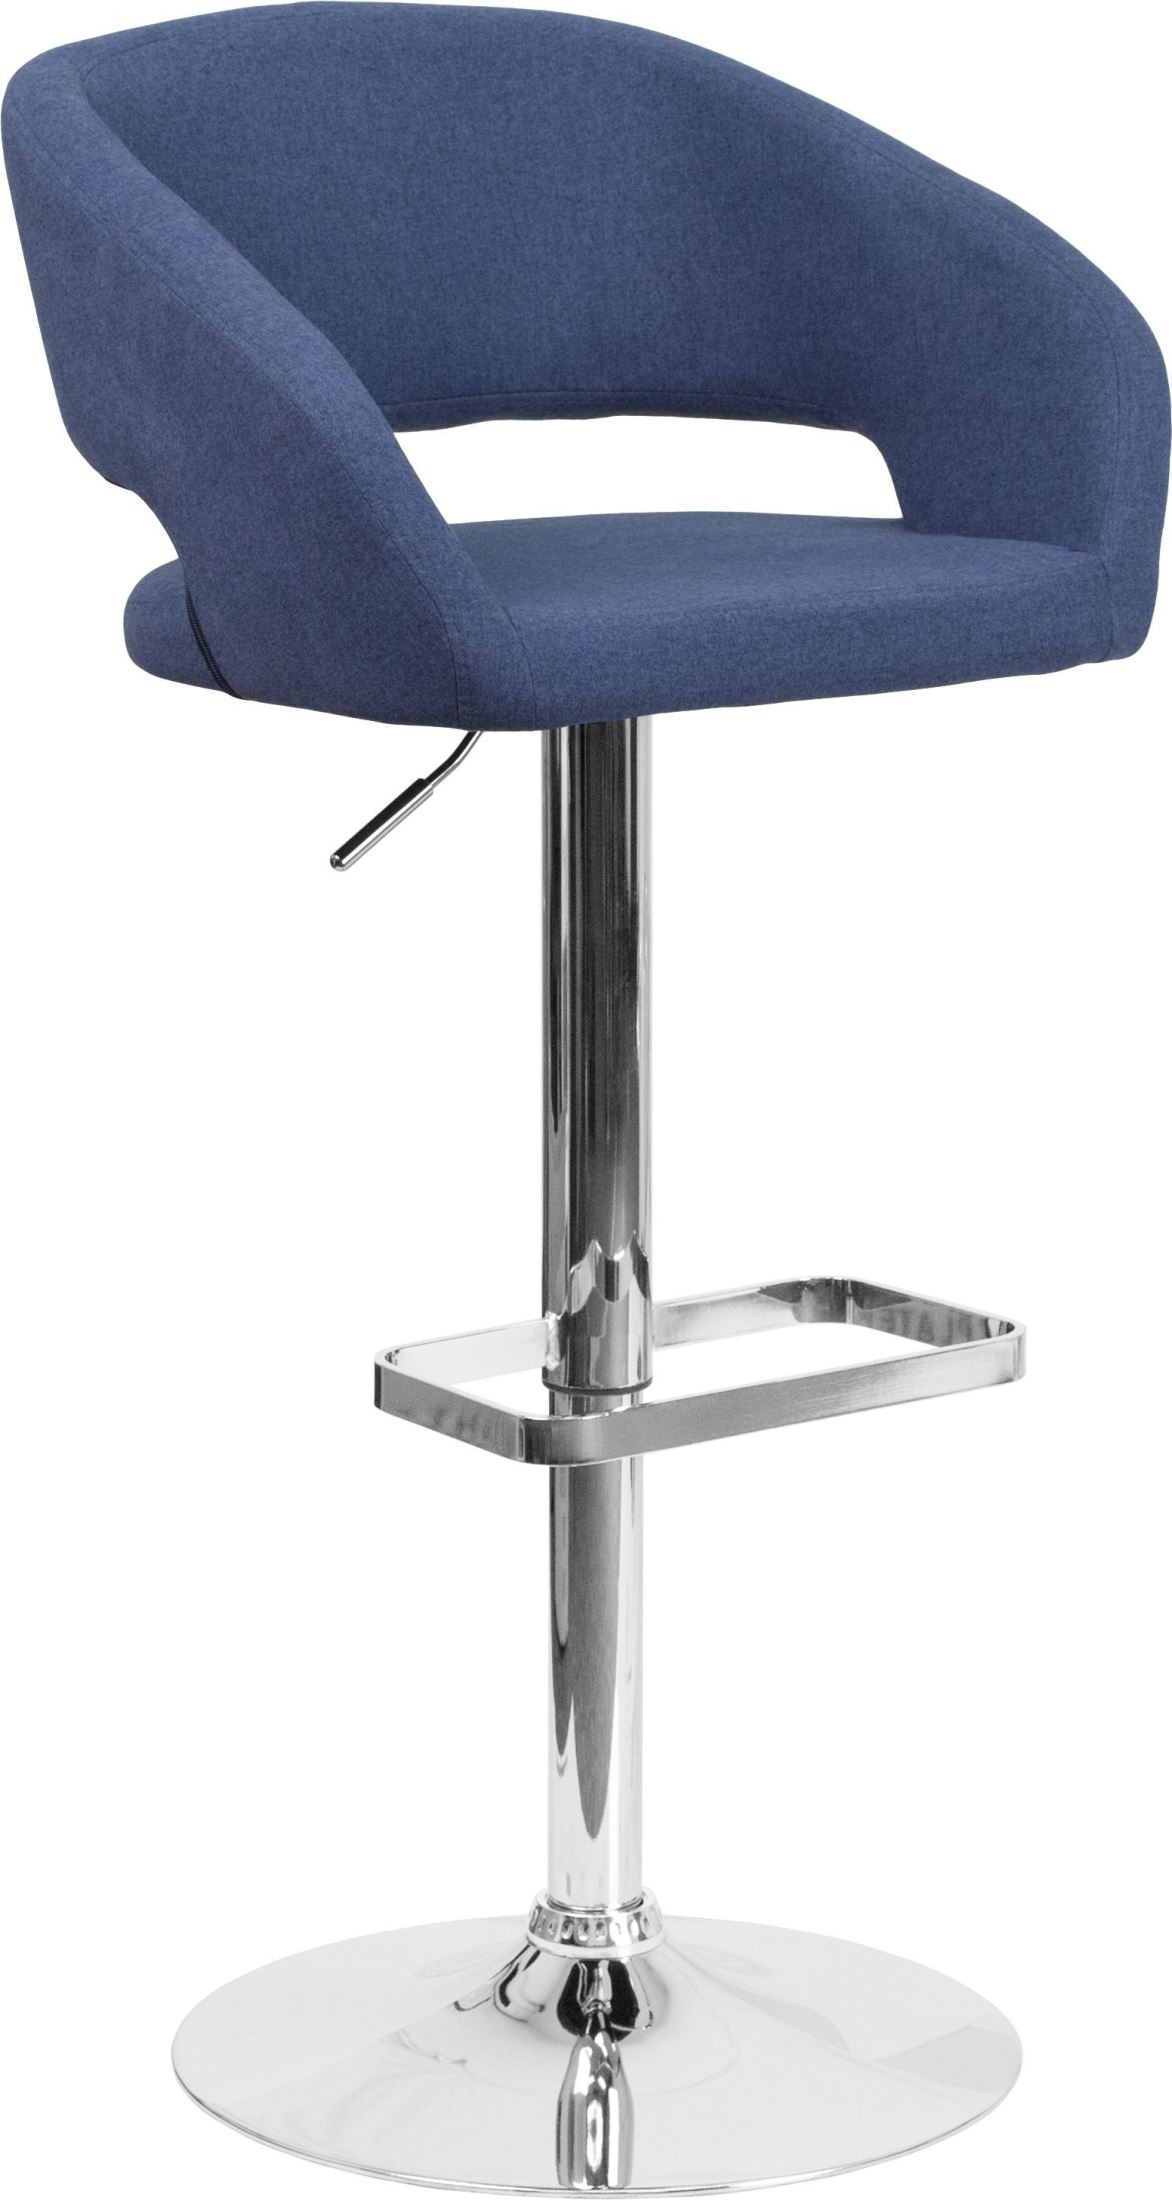 Rounded Blue Fabric Adjustable Height Bar Stool from  : ch 122070 blfab gg from colemanfurniture.com size 1172 x 2200 jpeg 215kB